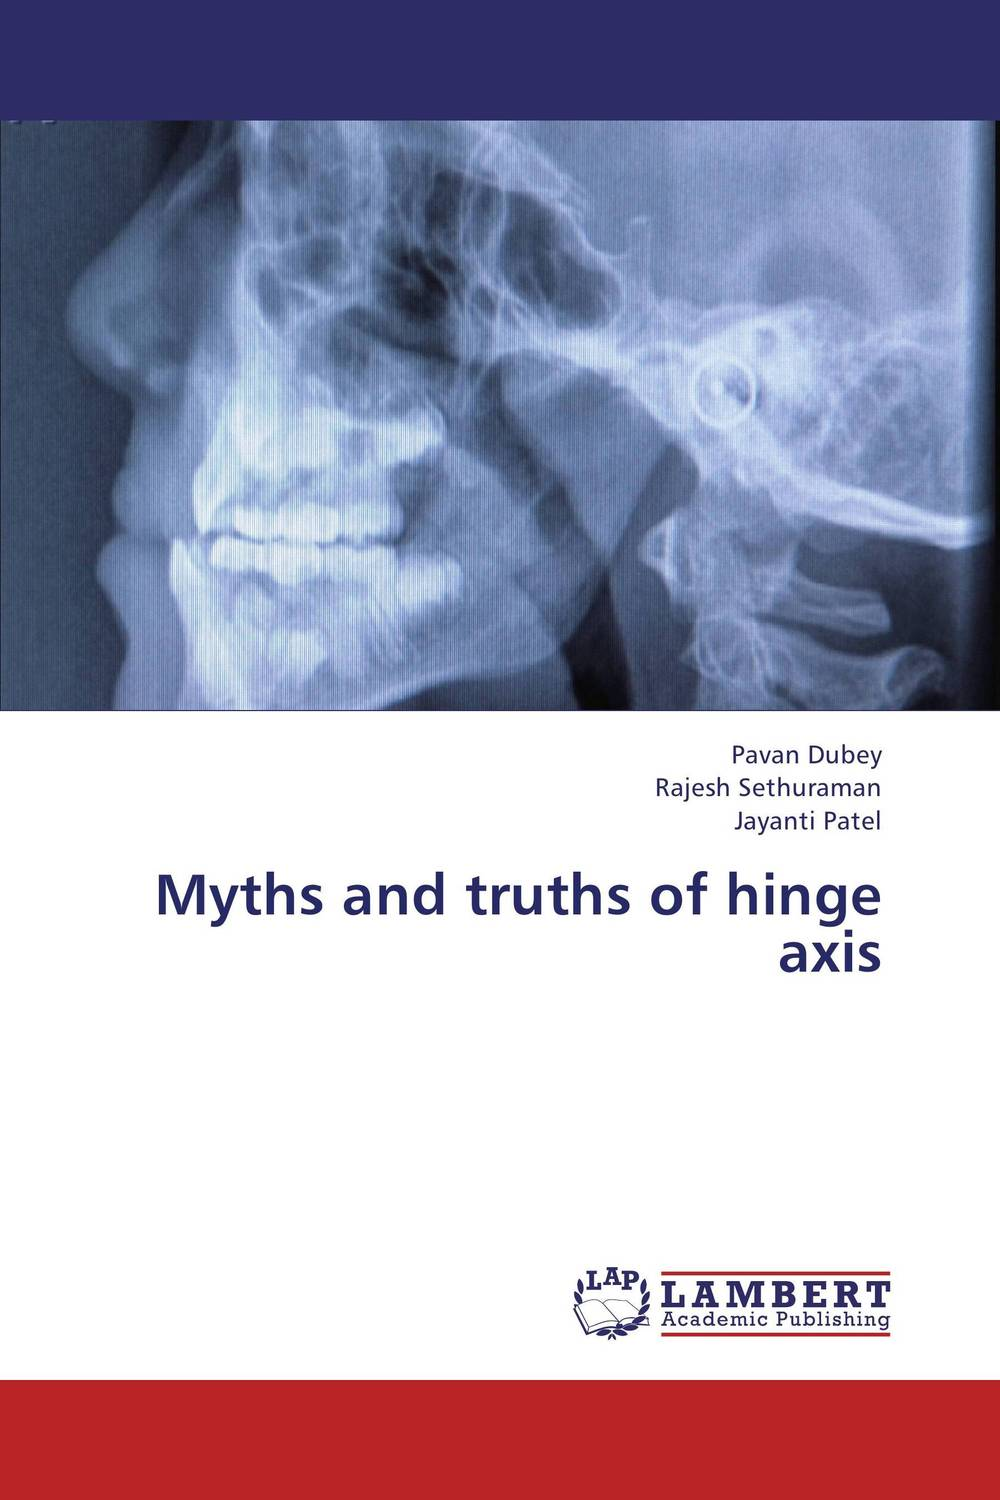 Myths and truths of hinge axis